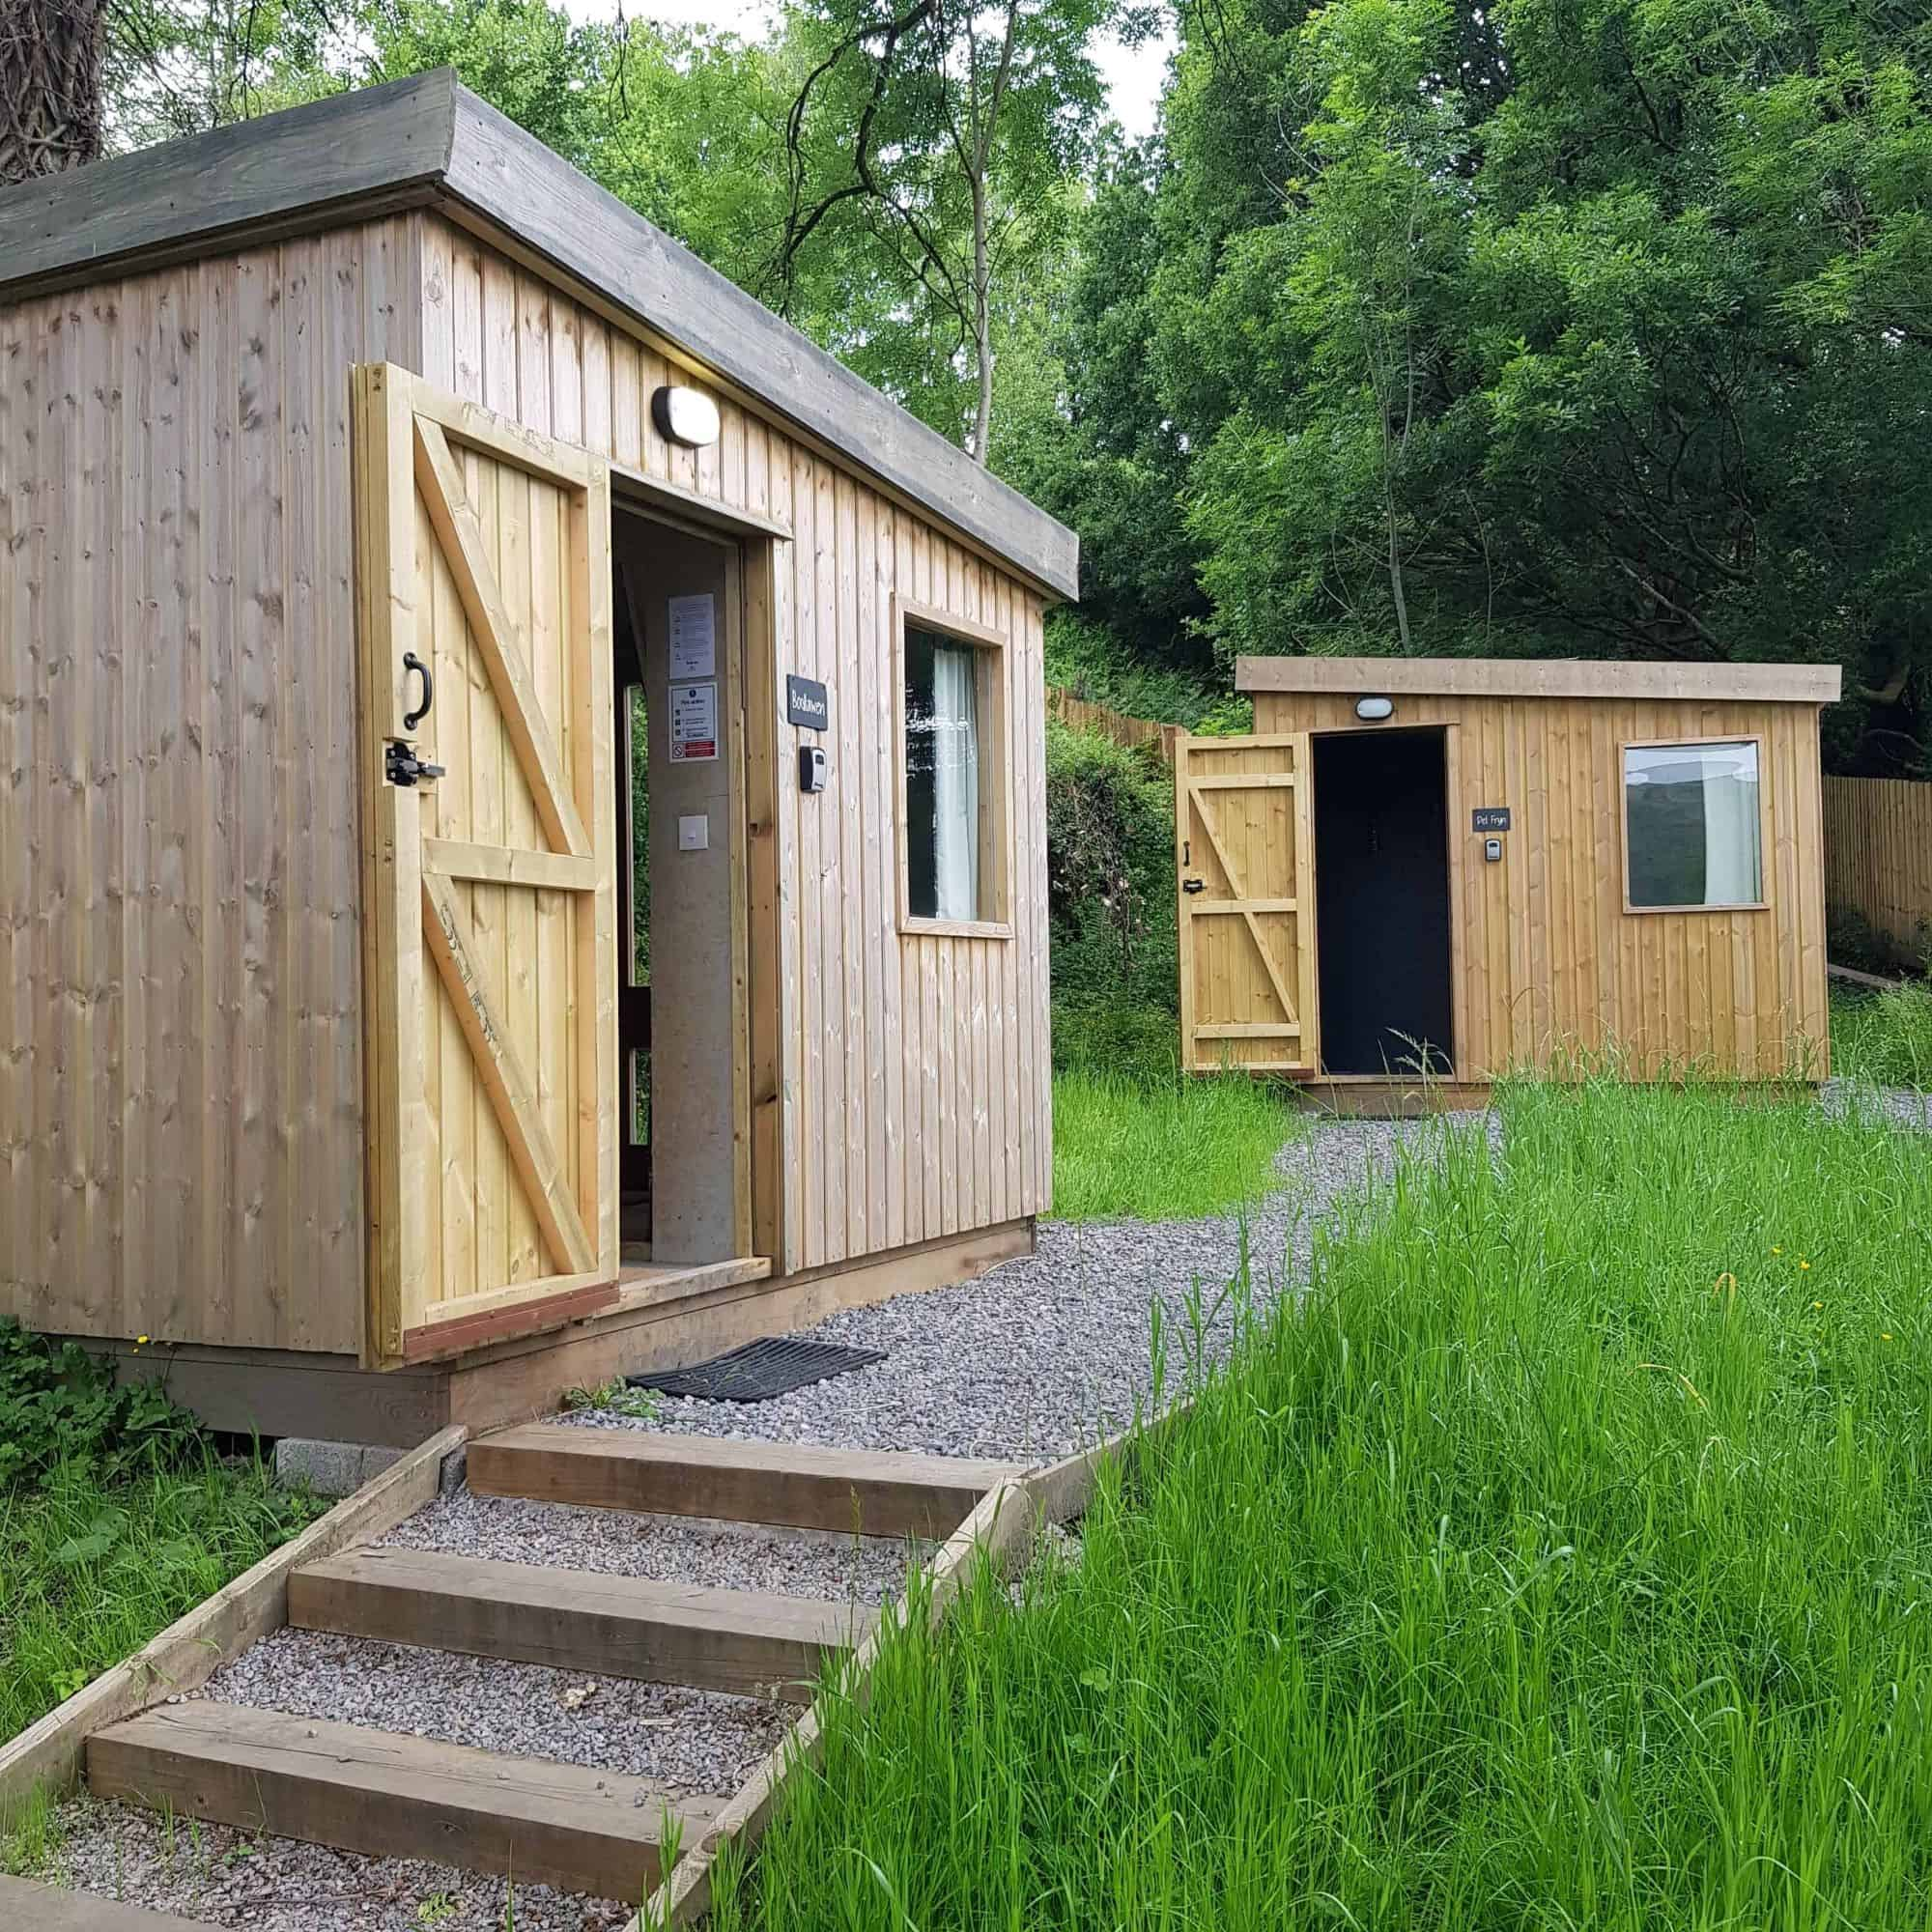 Two glamping cabins